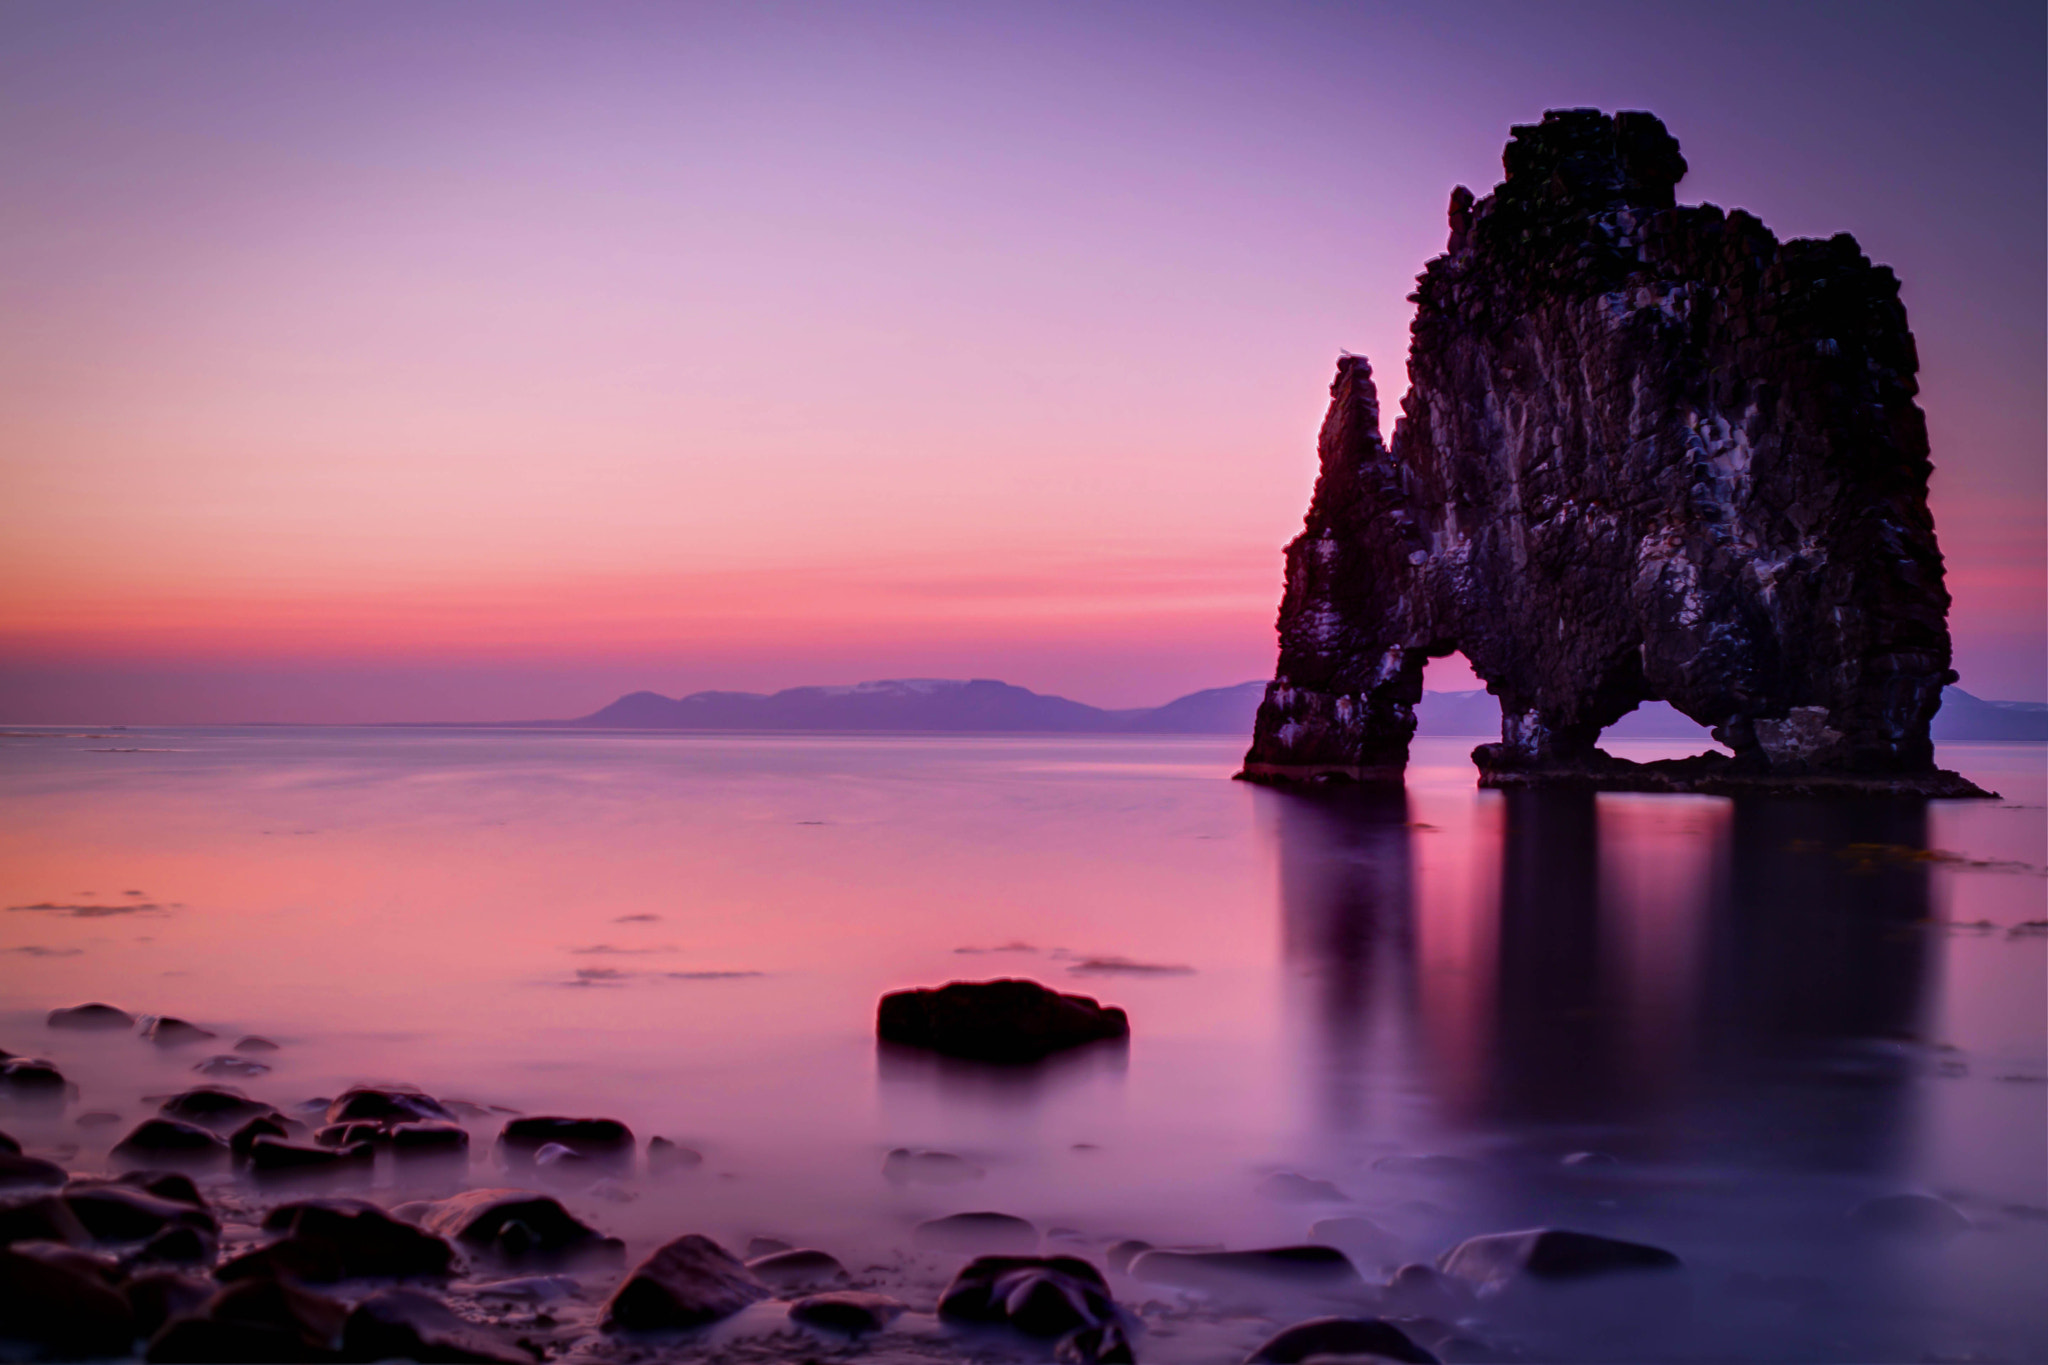 Photograph Hvitserkur Iceland by Nikhil Baradwaj on 500px